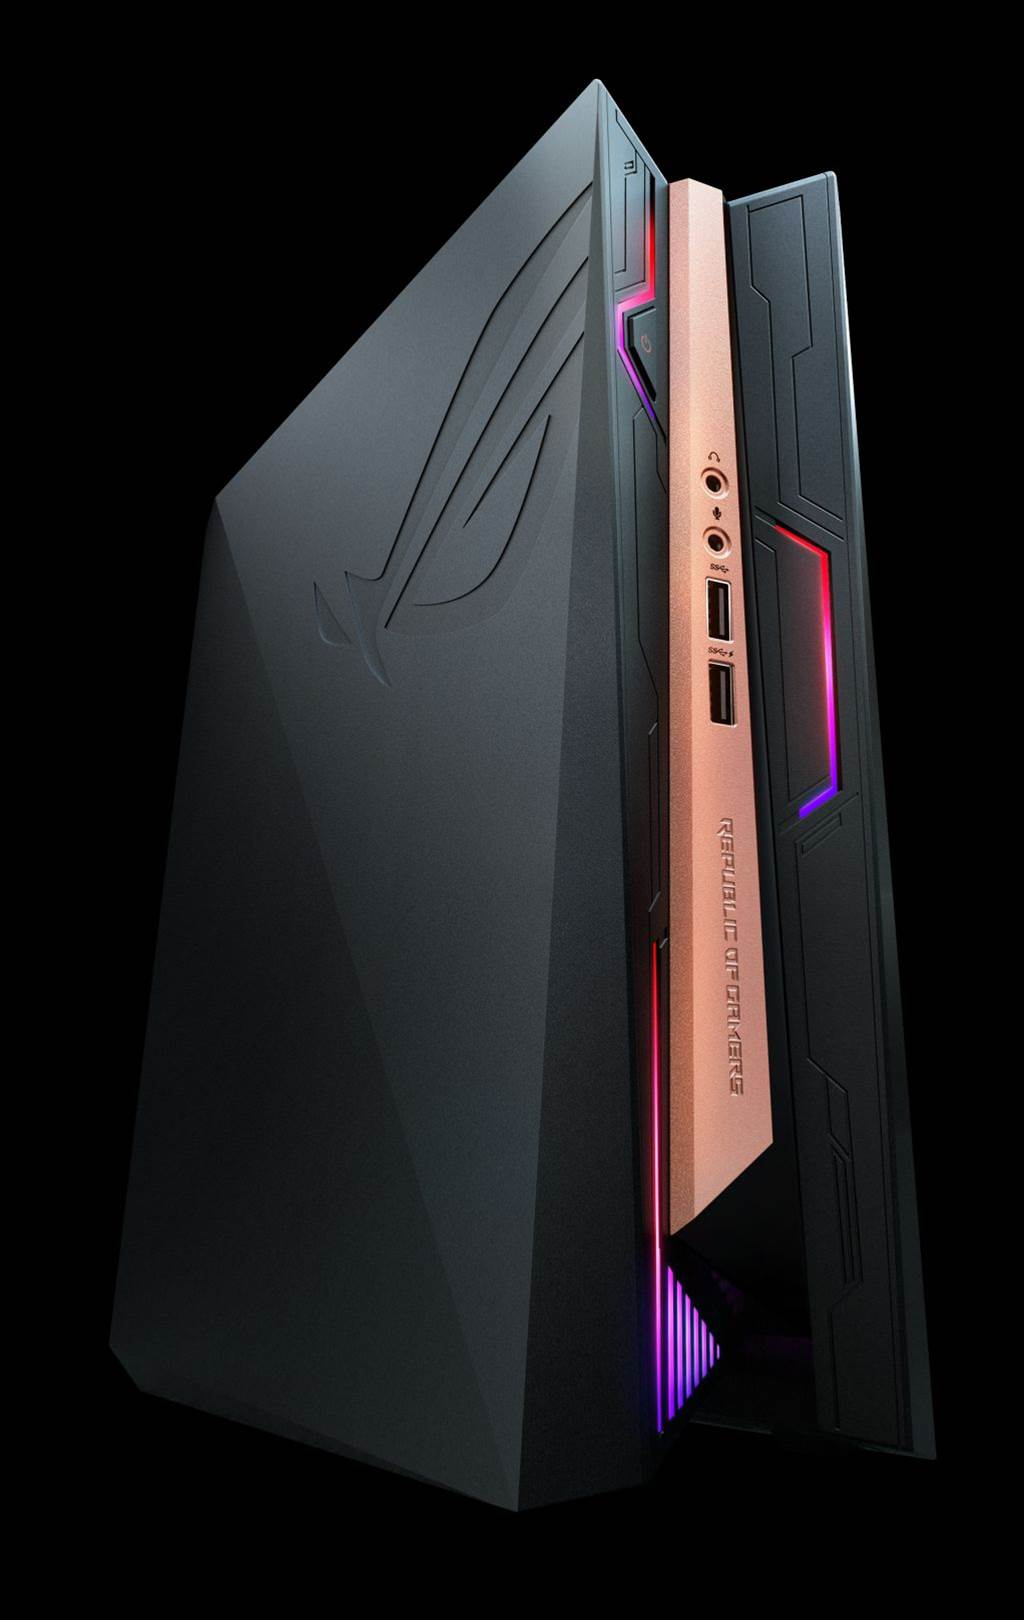 Asus announces ROG GR8 II VR-ready PC